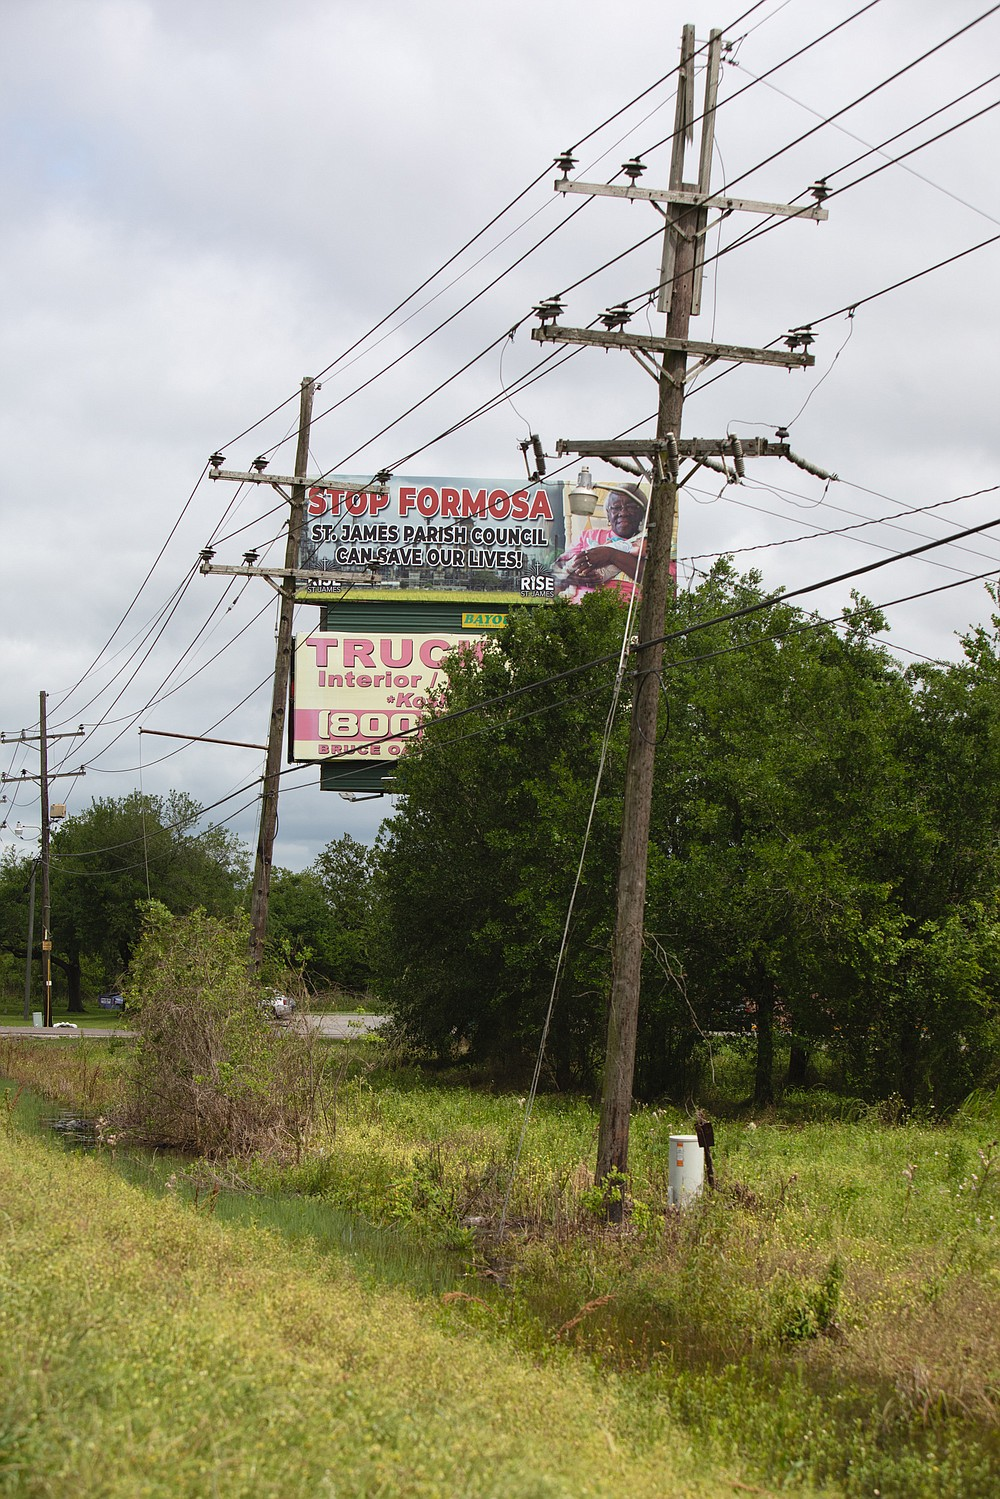 A billboard in St. James Parish, Louisiana, makes clear the local opposition to Formosa's proposed plant. MUST CREDIT: Photo for The Washington Post by Camille Lenain